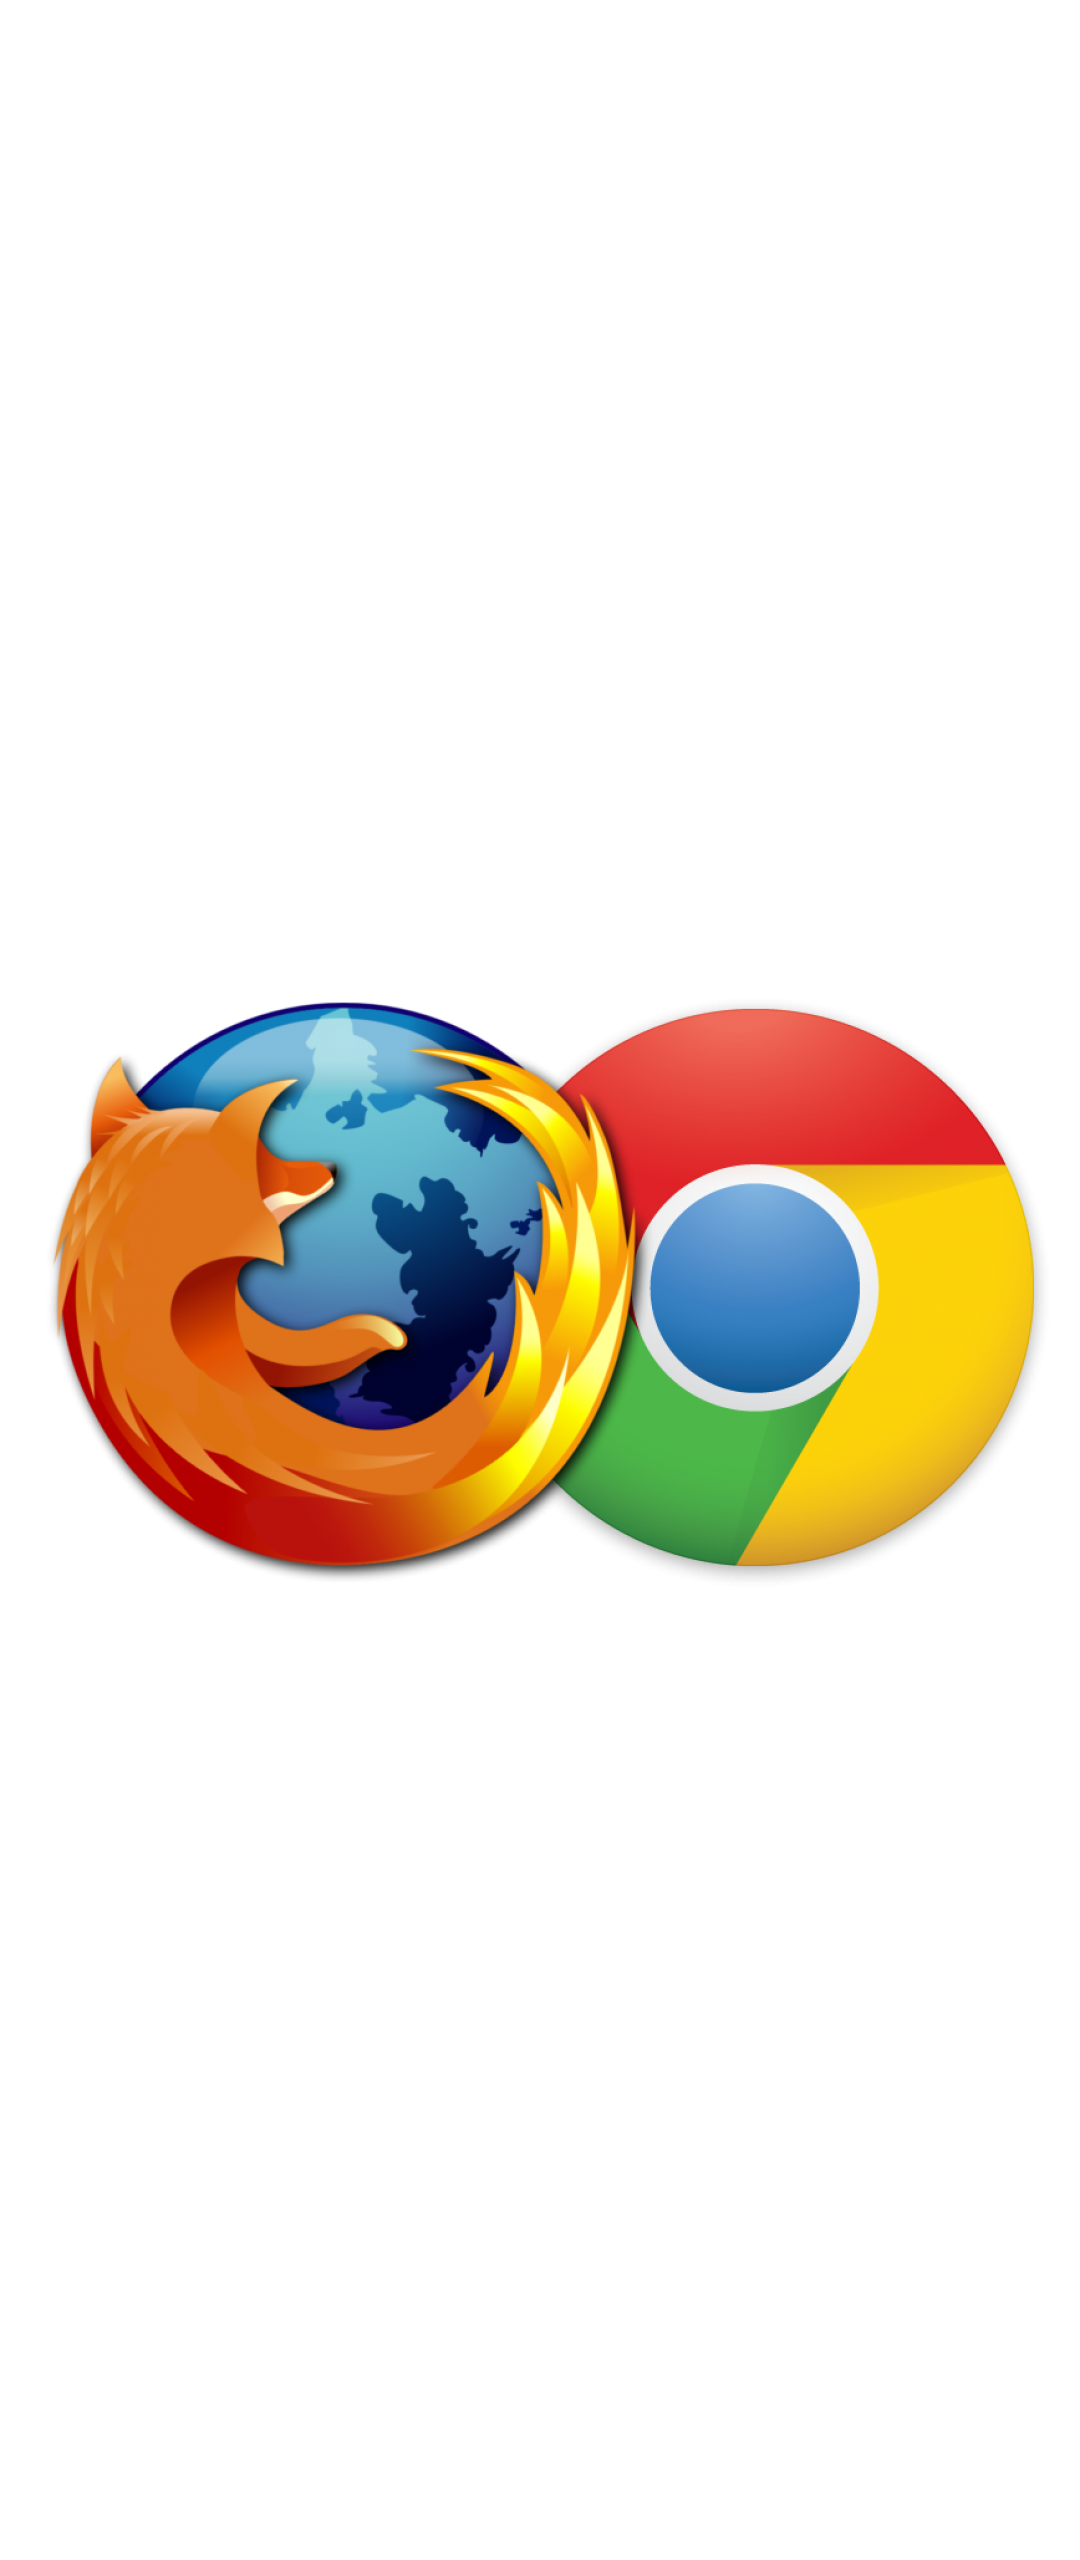 Chrome y Firefox pierden cuota de mercado a favor de Safari